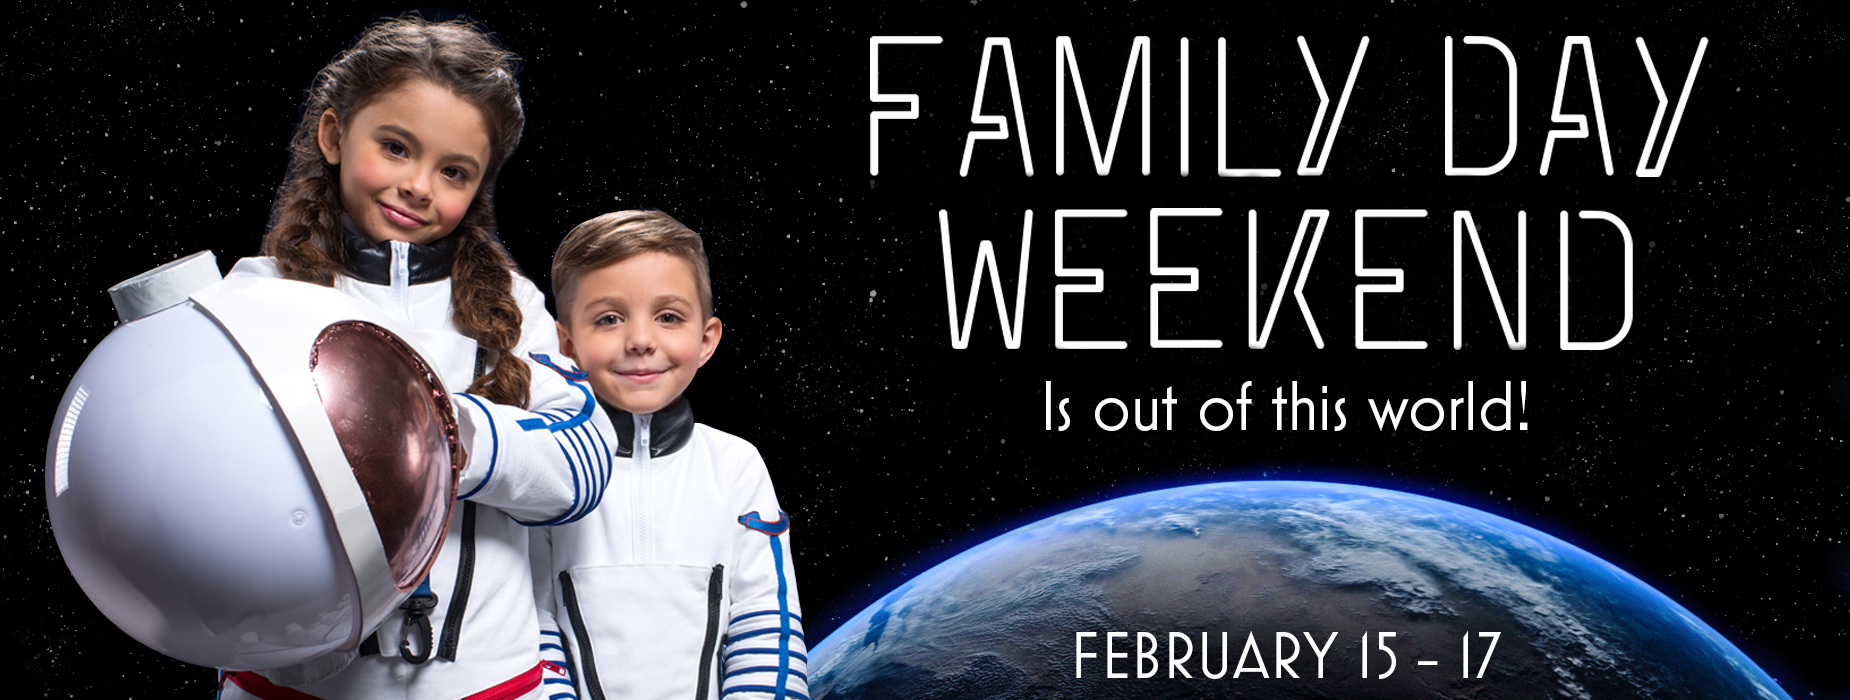 Poster for - Family Day Weekend